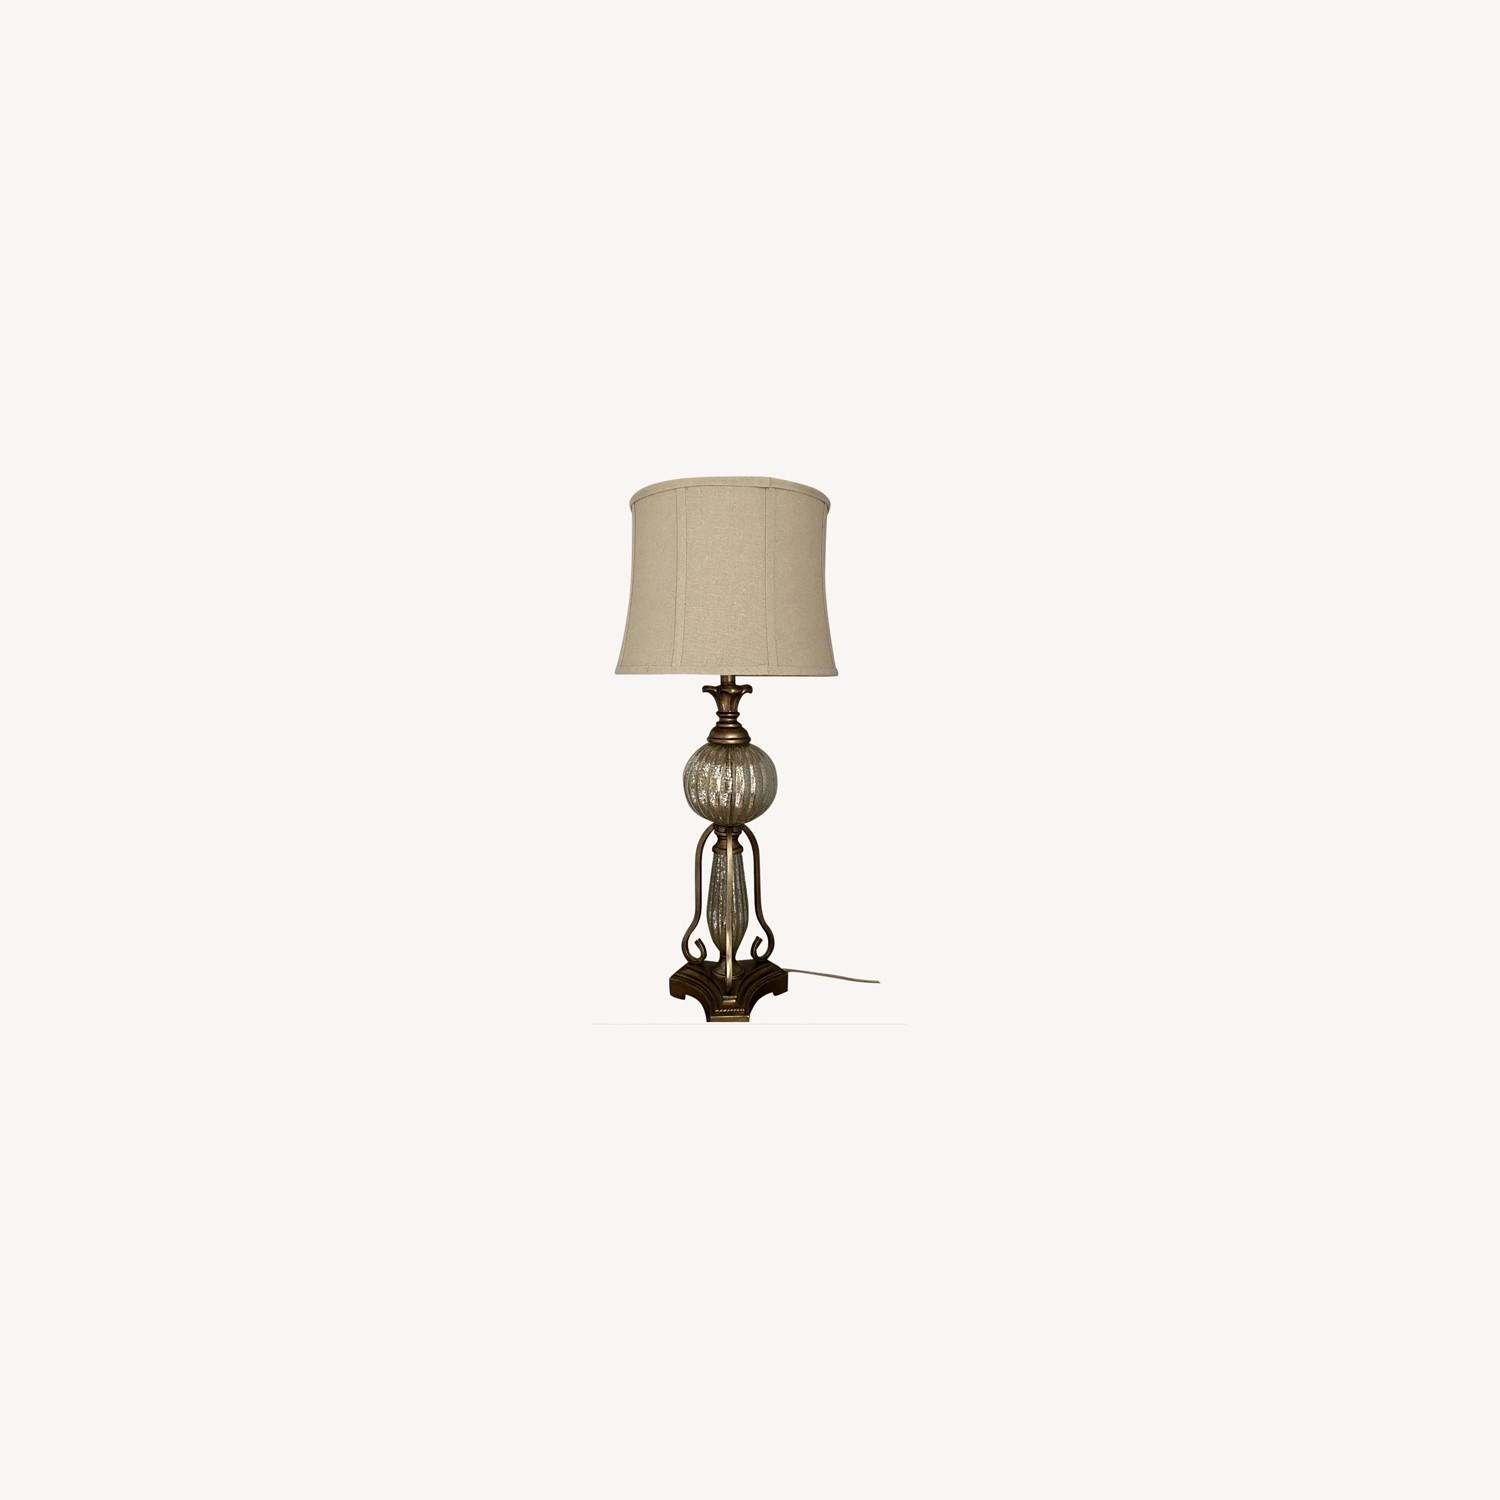 Decorative Table Lamps - image-0